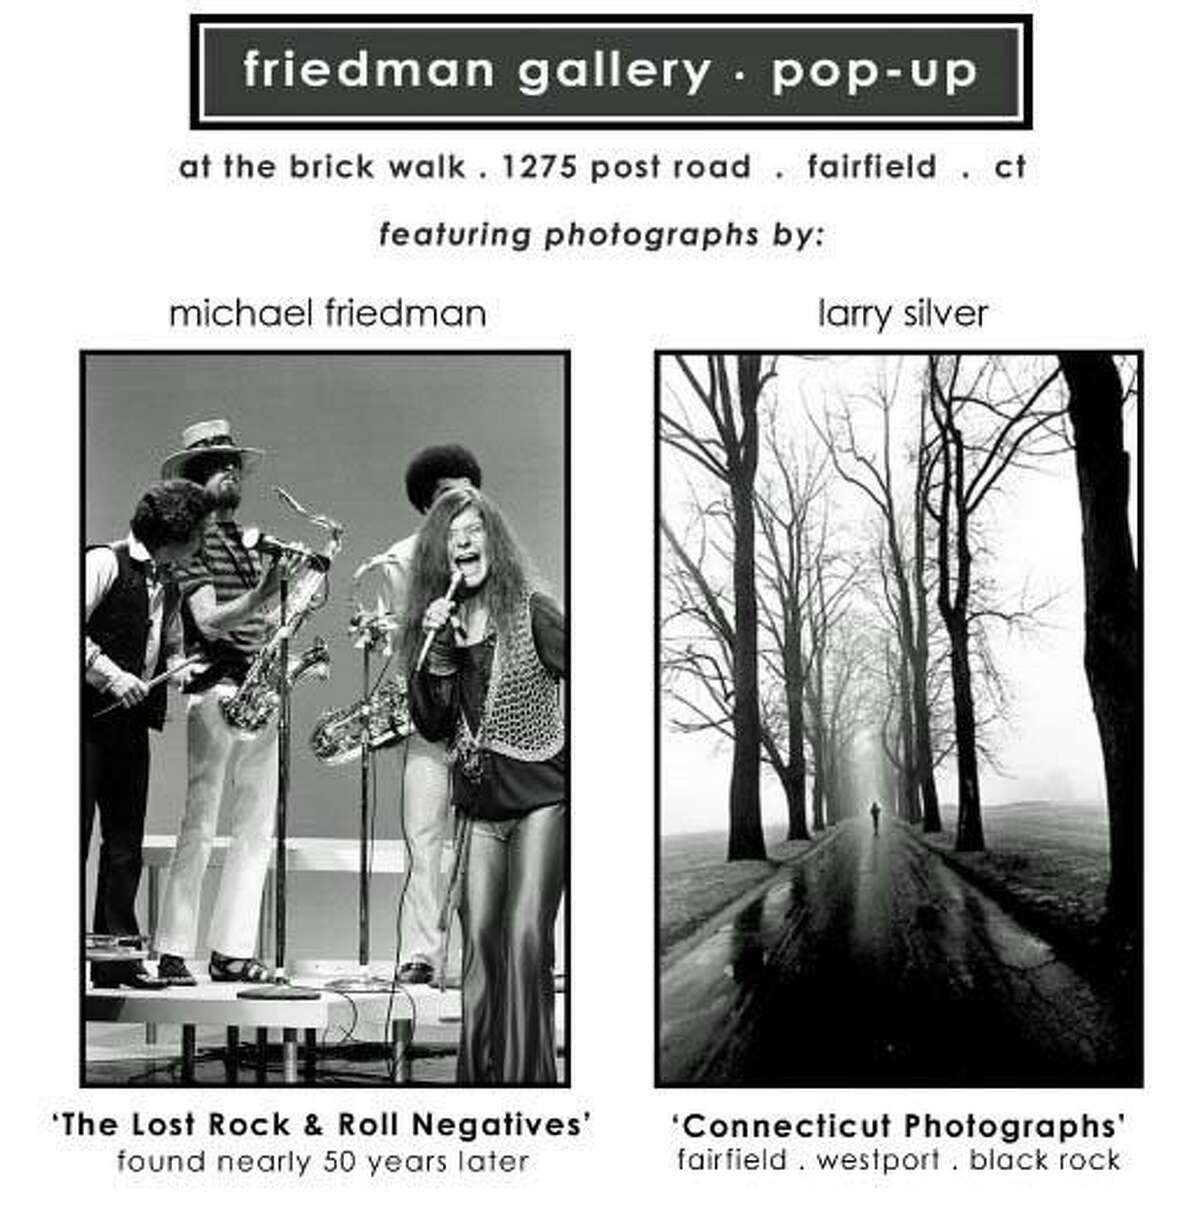 The Friedman Gallery is at 1275 Post Road.